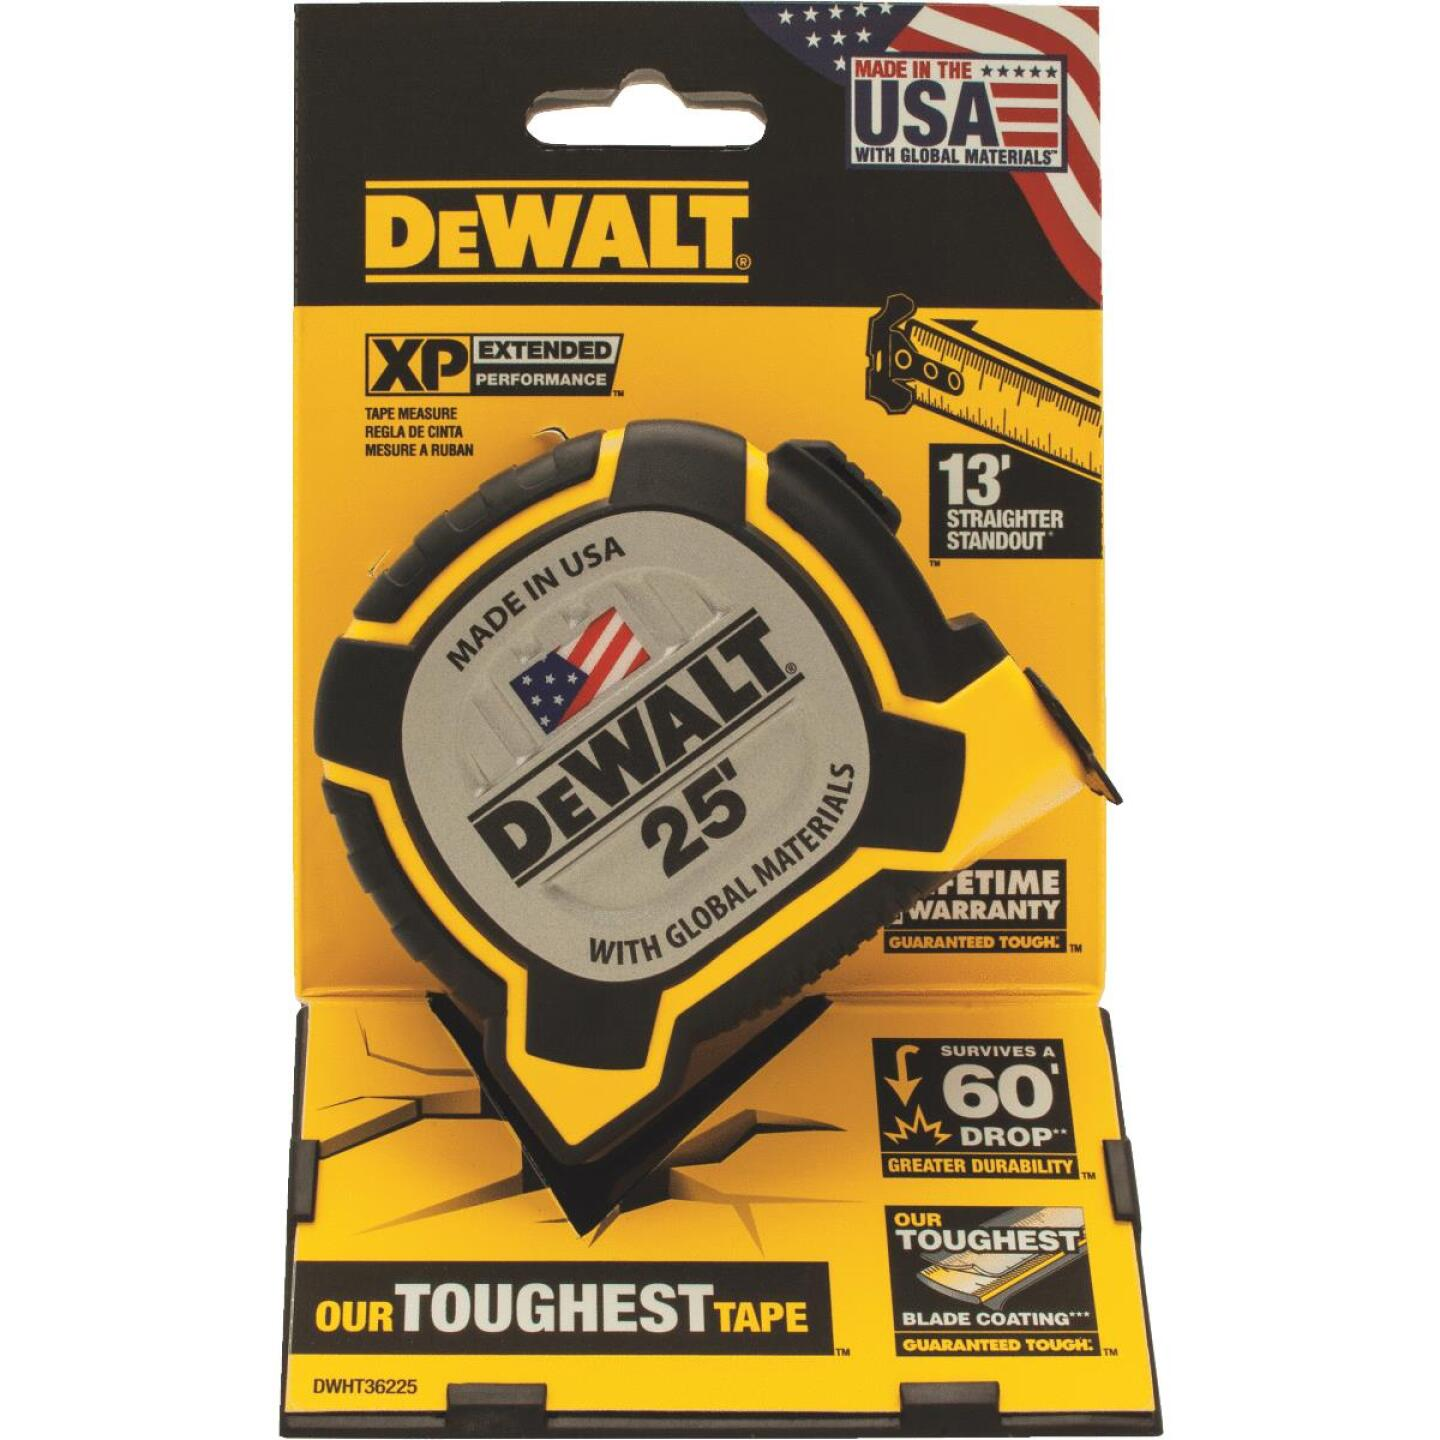 DeWalt XP 25 Ft. Tape Measure Image 2